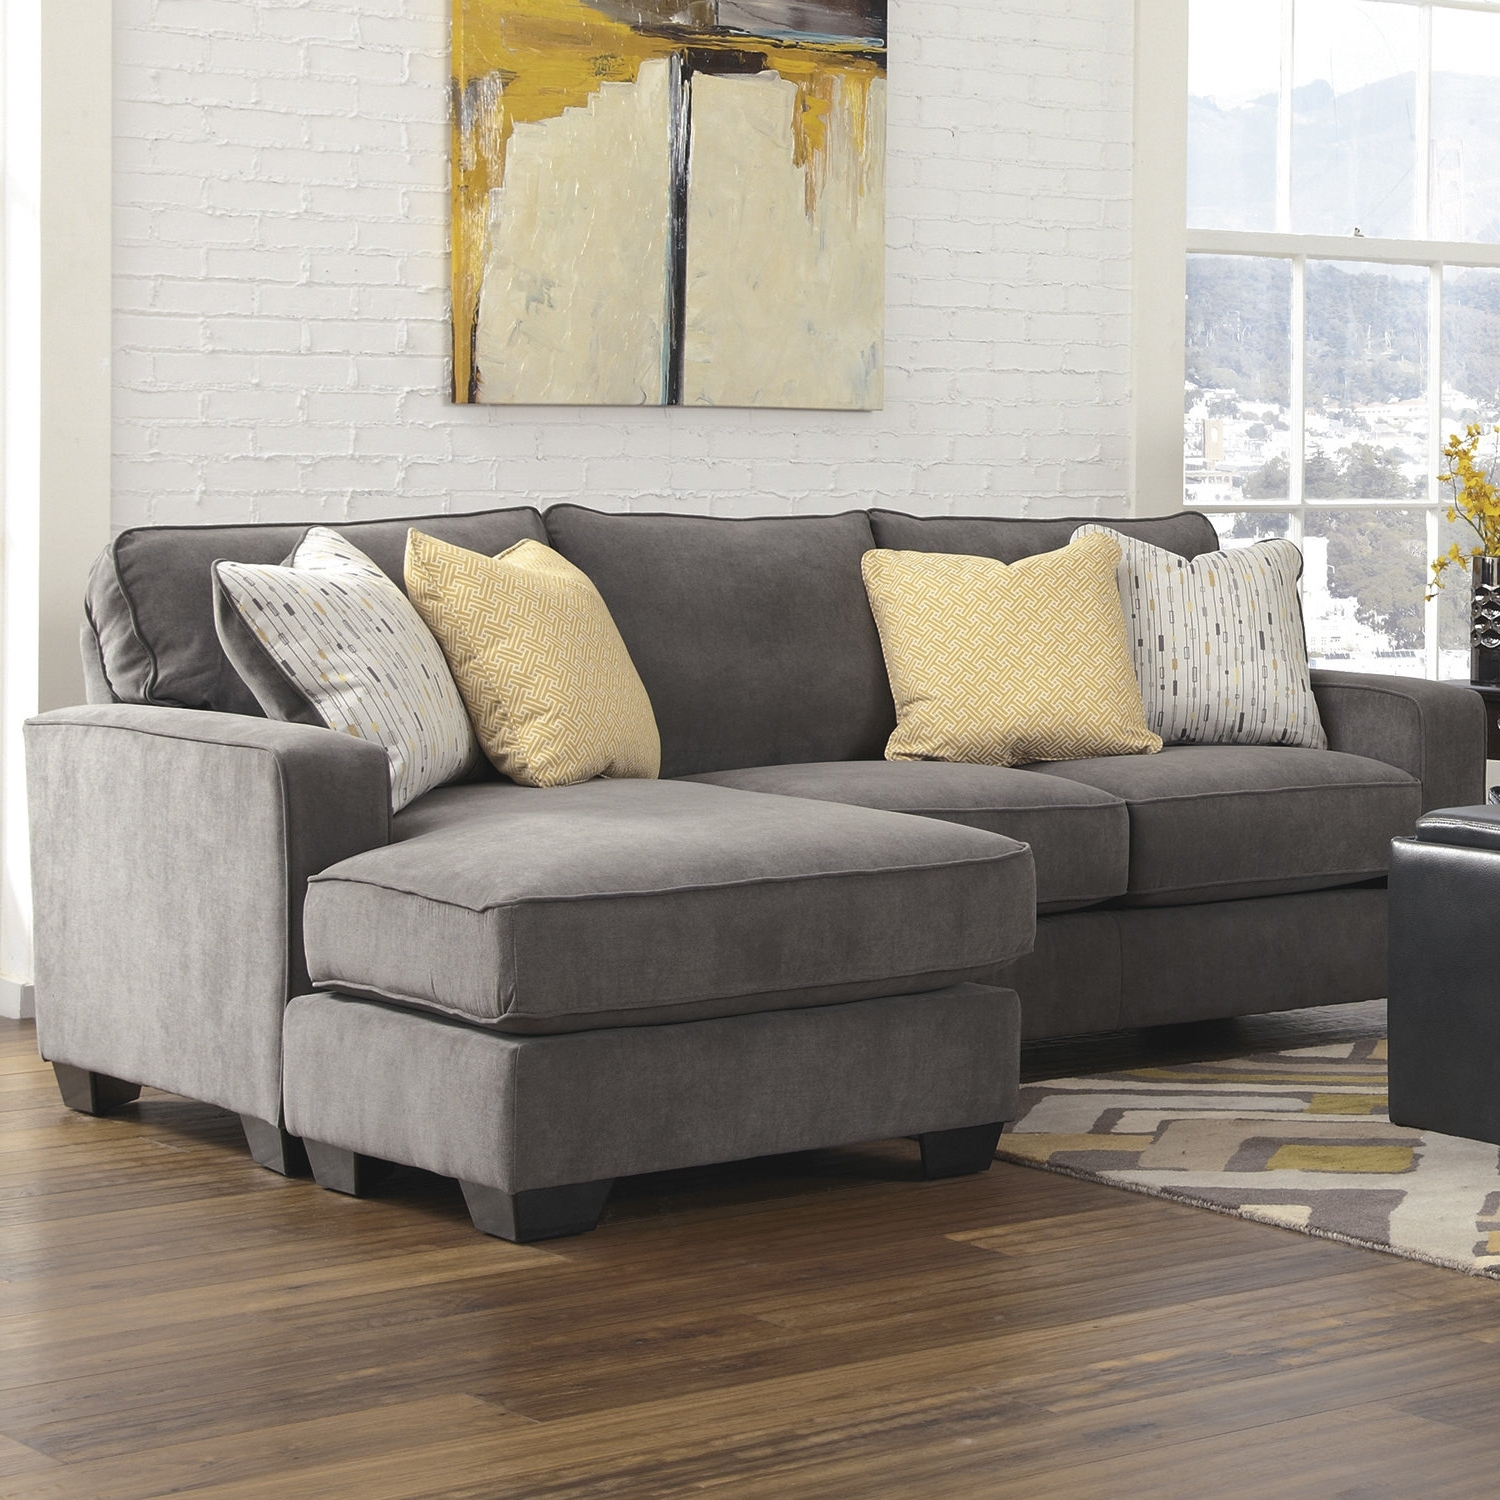 Most Current Small Sectional Sofas Throughout Sectional Sofas (View 10 of 20)